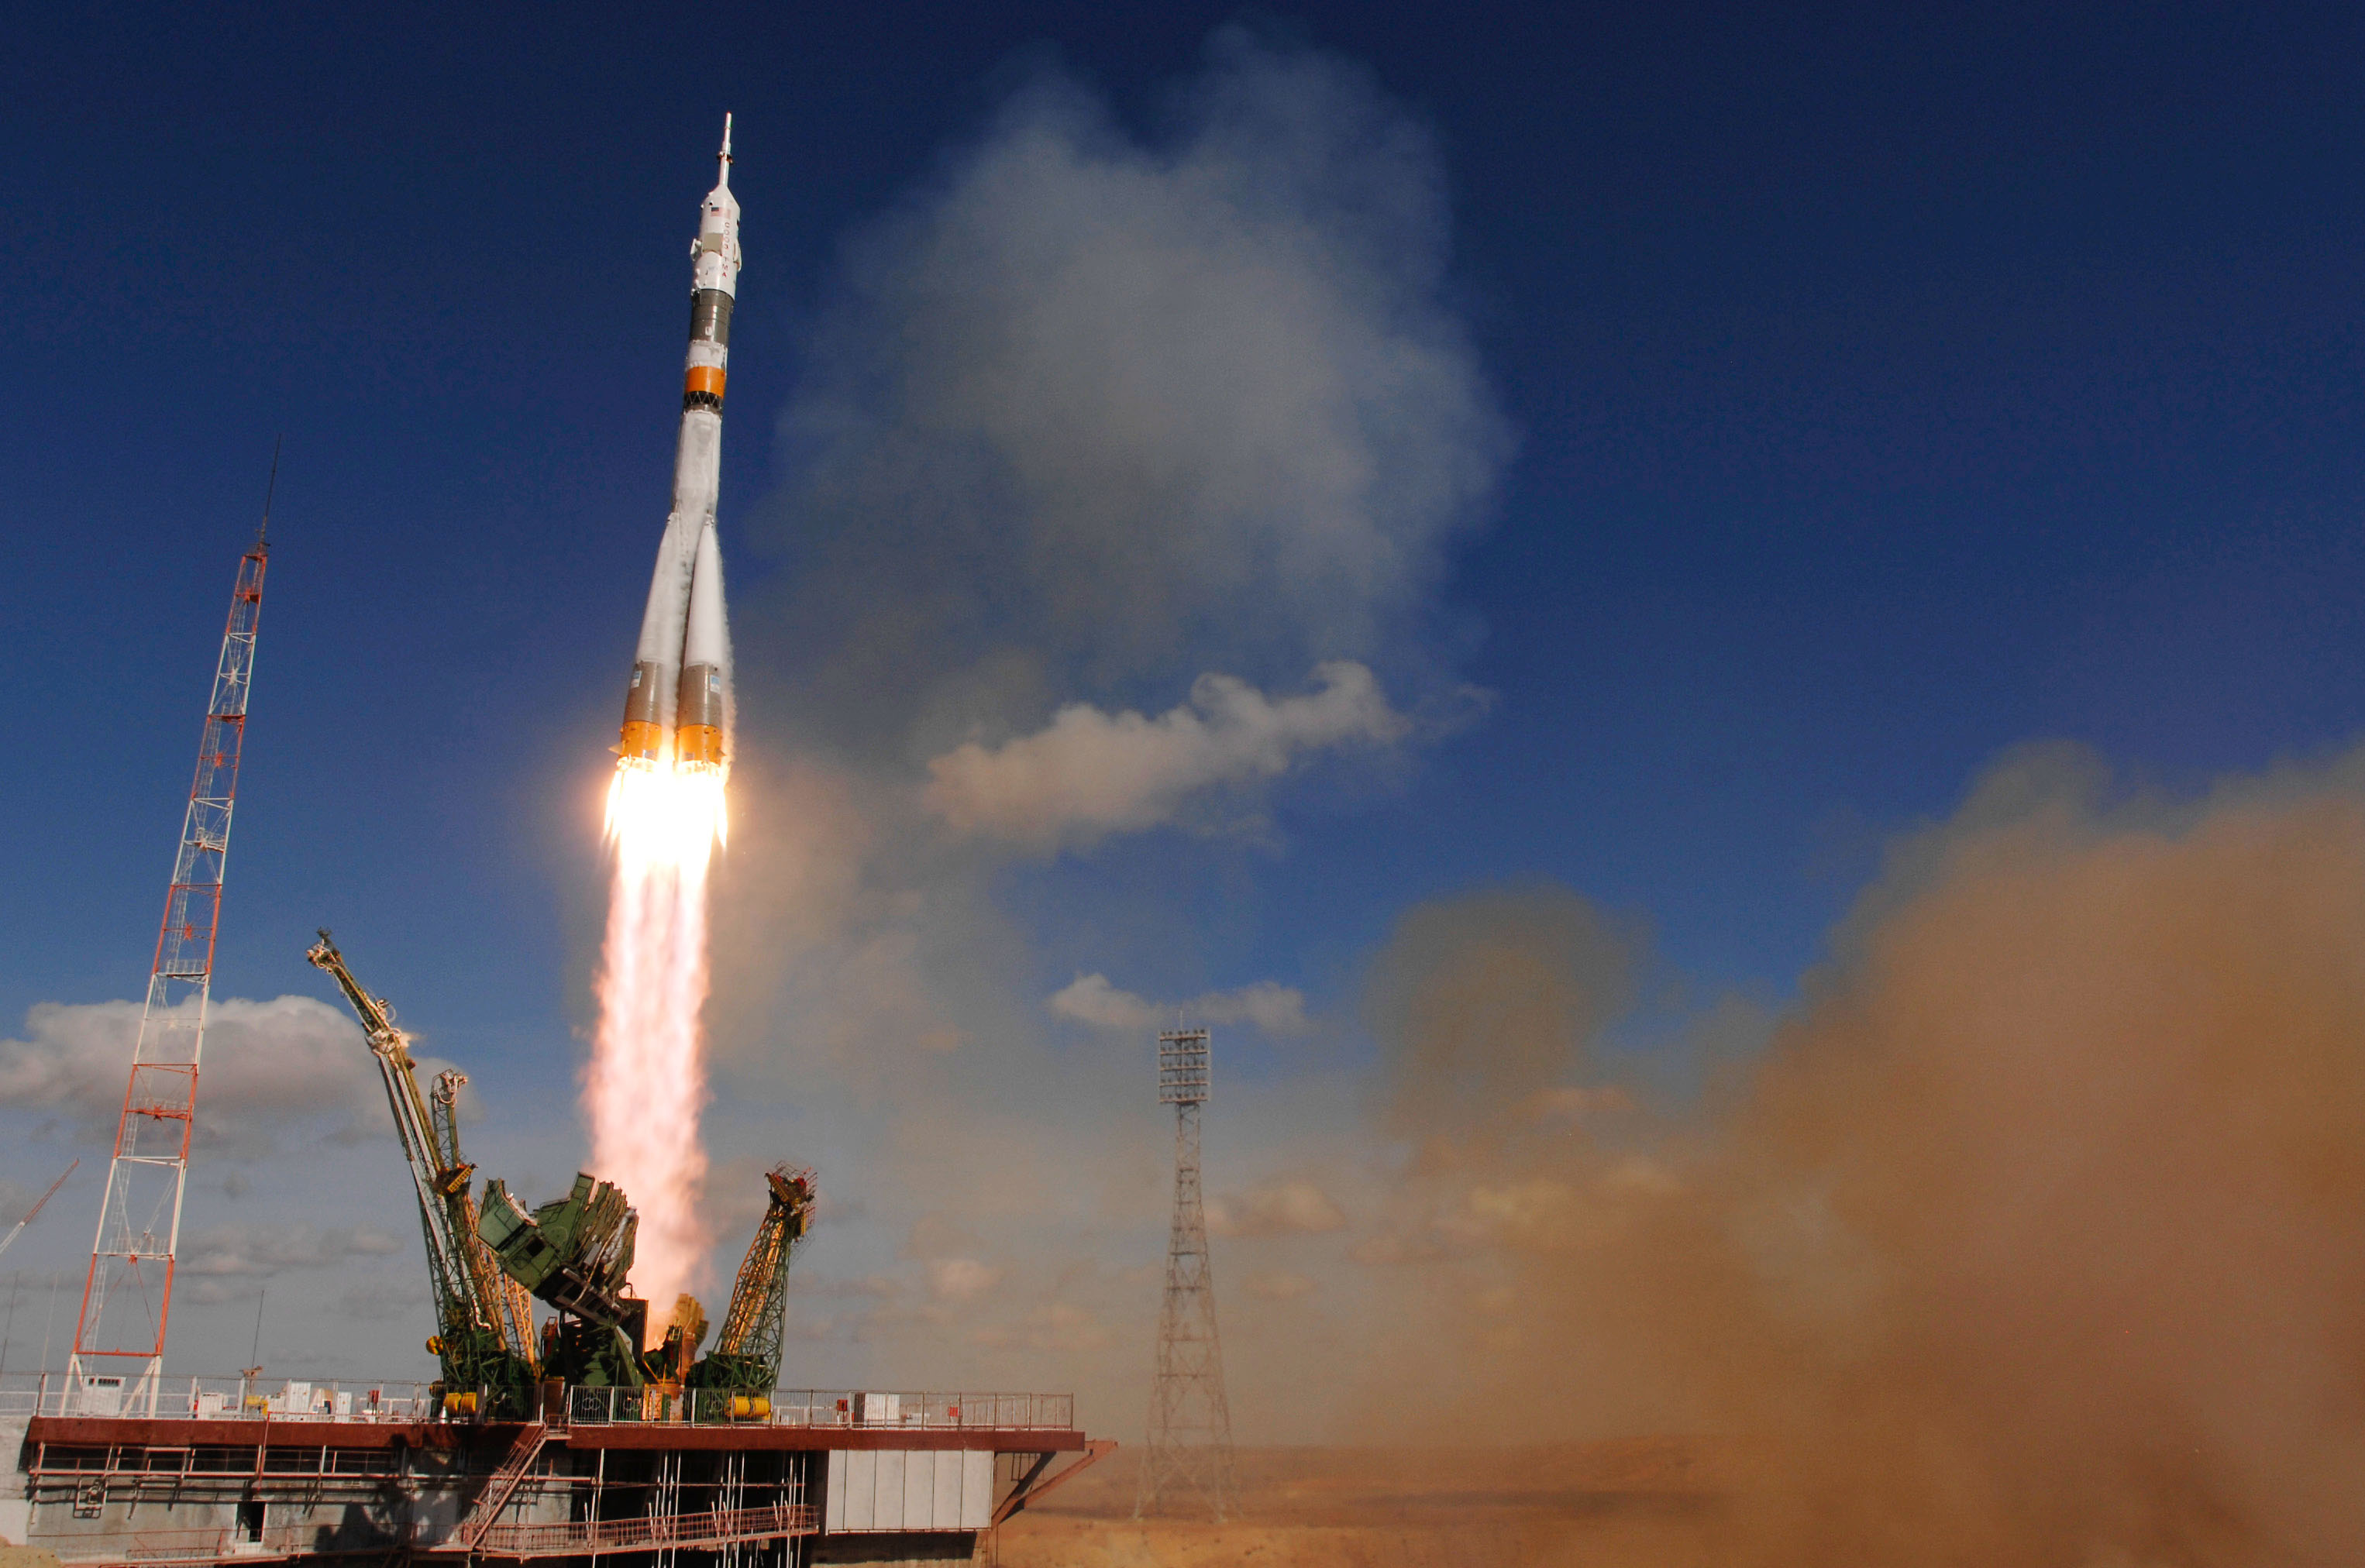 The Soyuz TMA-13 spacecraft launches from the Baikonur Cosmodrome